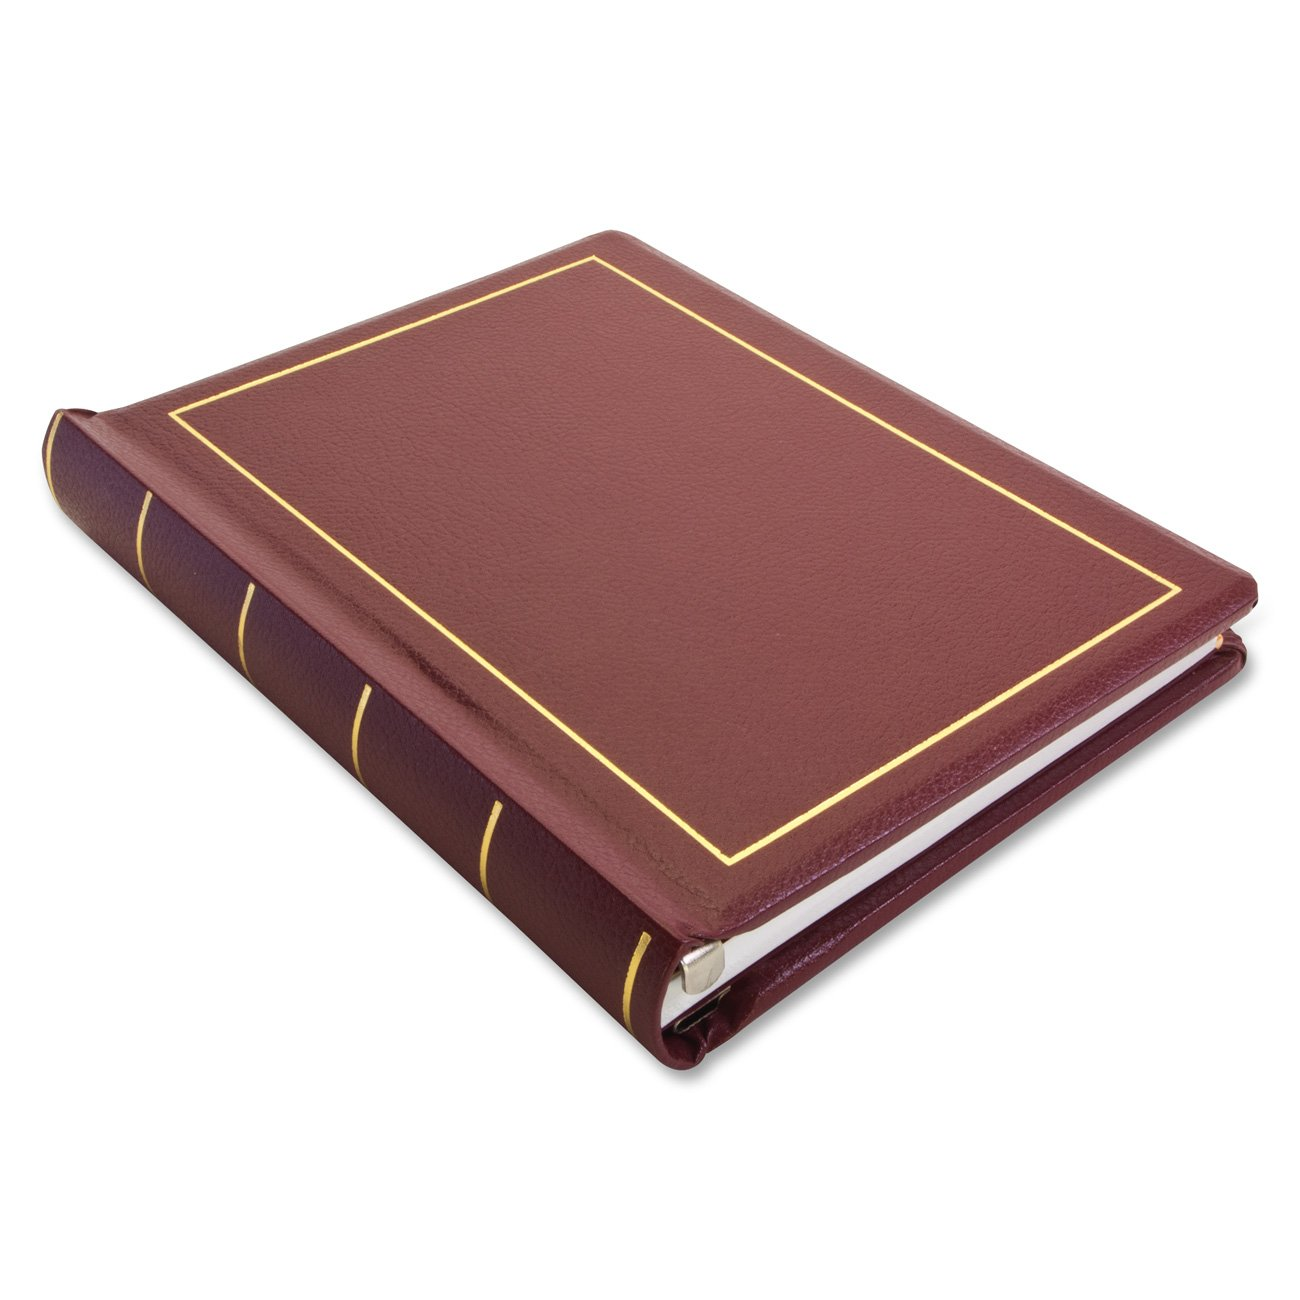 Wilson Jones 0396-11 Looseleaf Minute Book, Red Leather-Like Cover, 125 Pages, 8 1/2 x 11 Inches by Wilson Jones